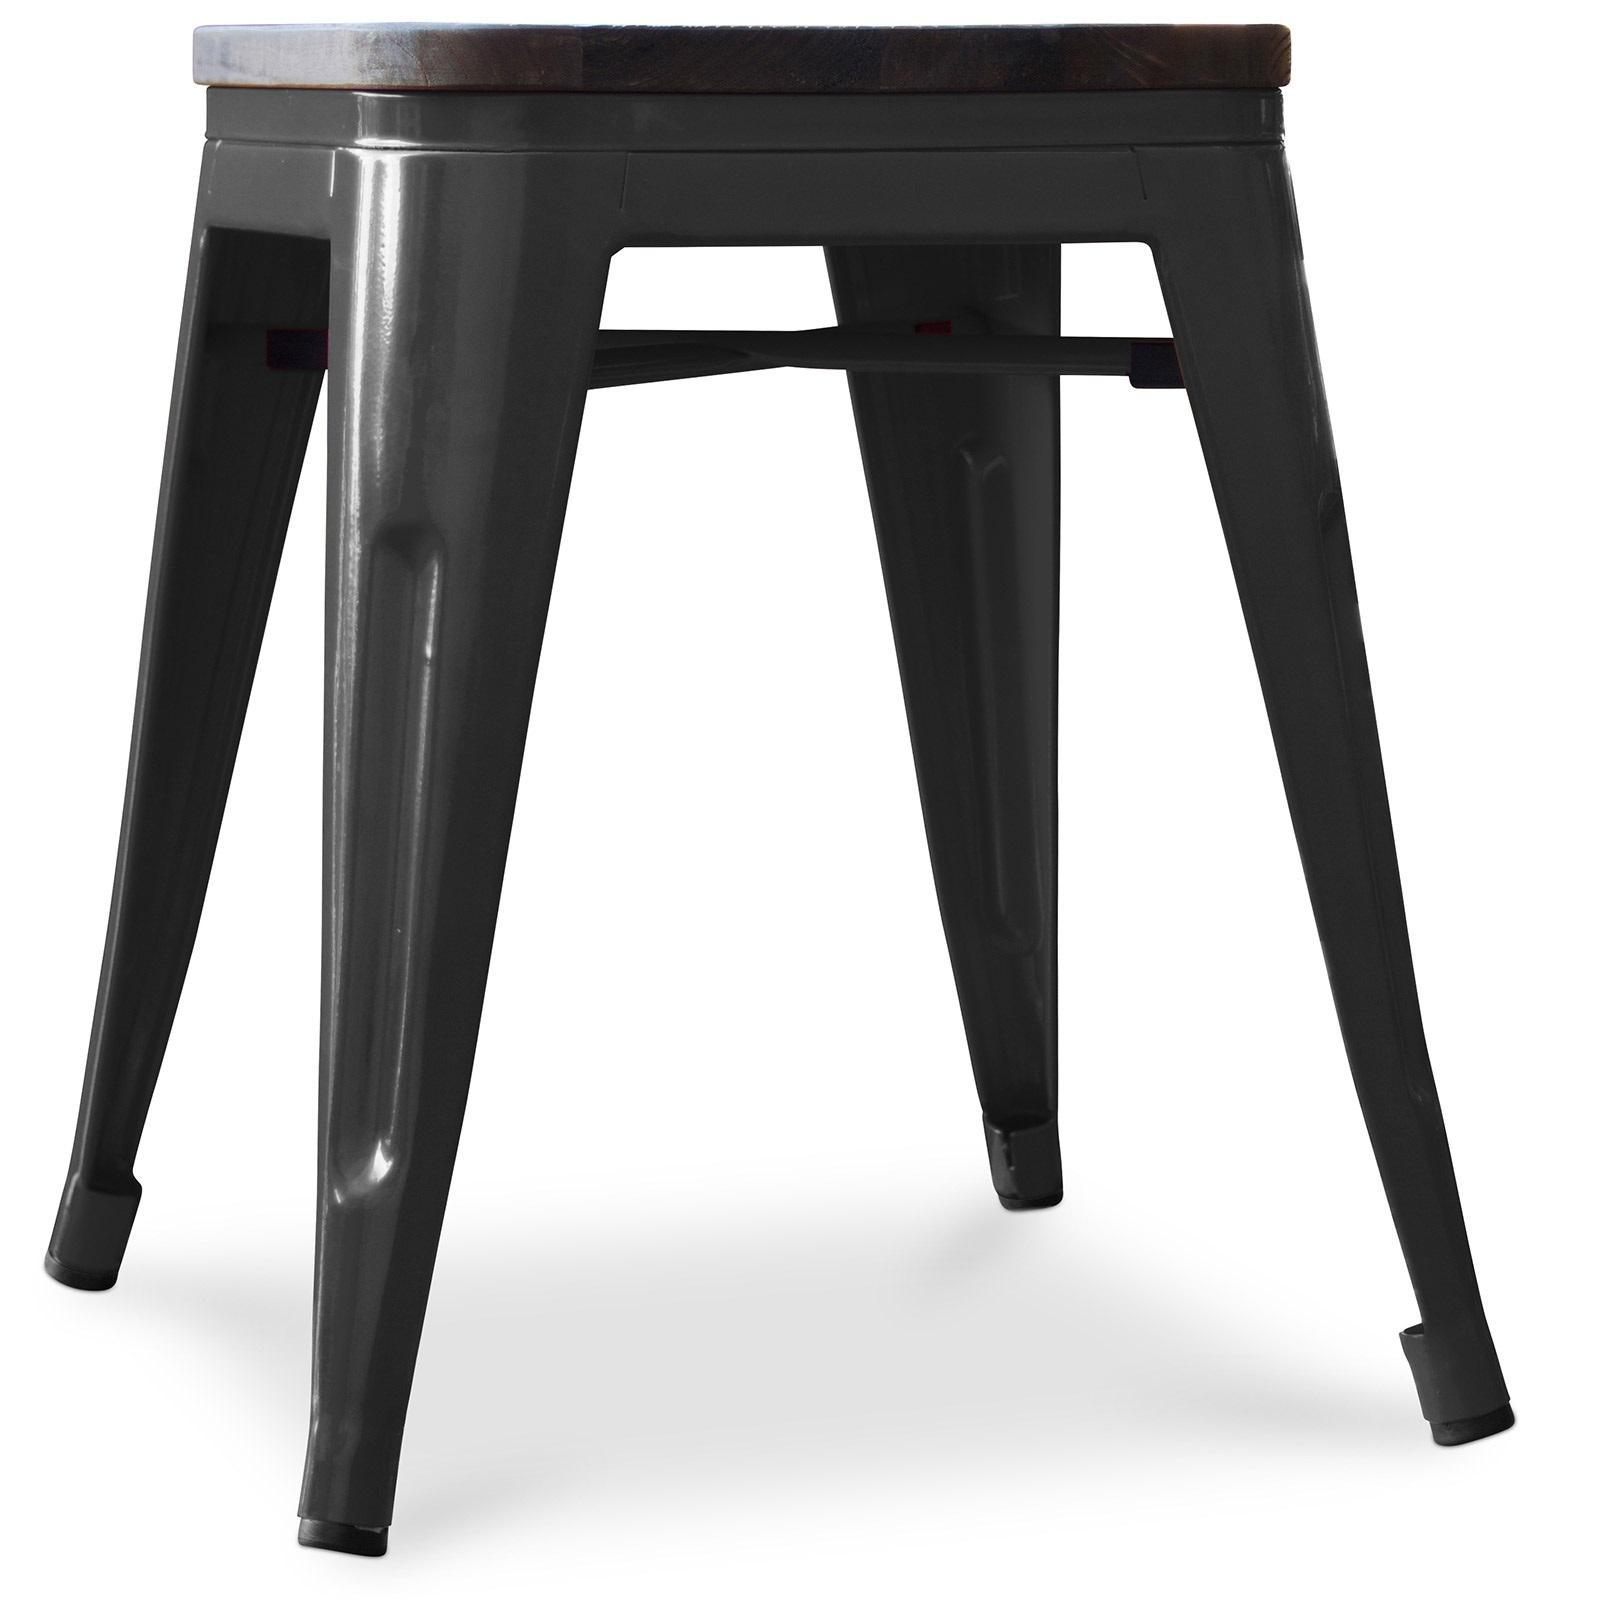 tabouret m tal brillant noir assise bois industri. Black Bedroom Furniture Sets. Home Design Ideas